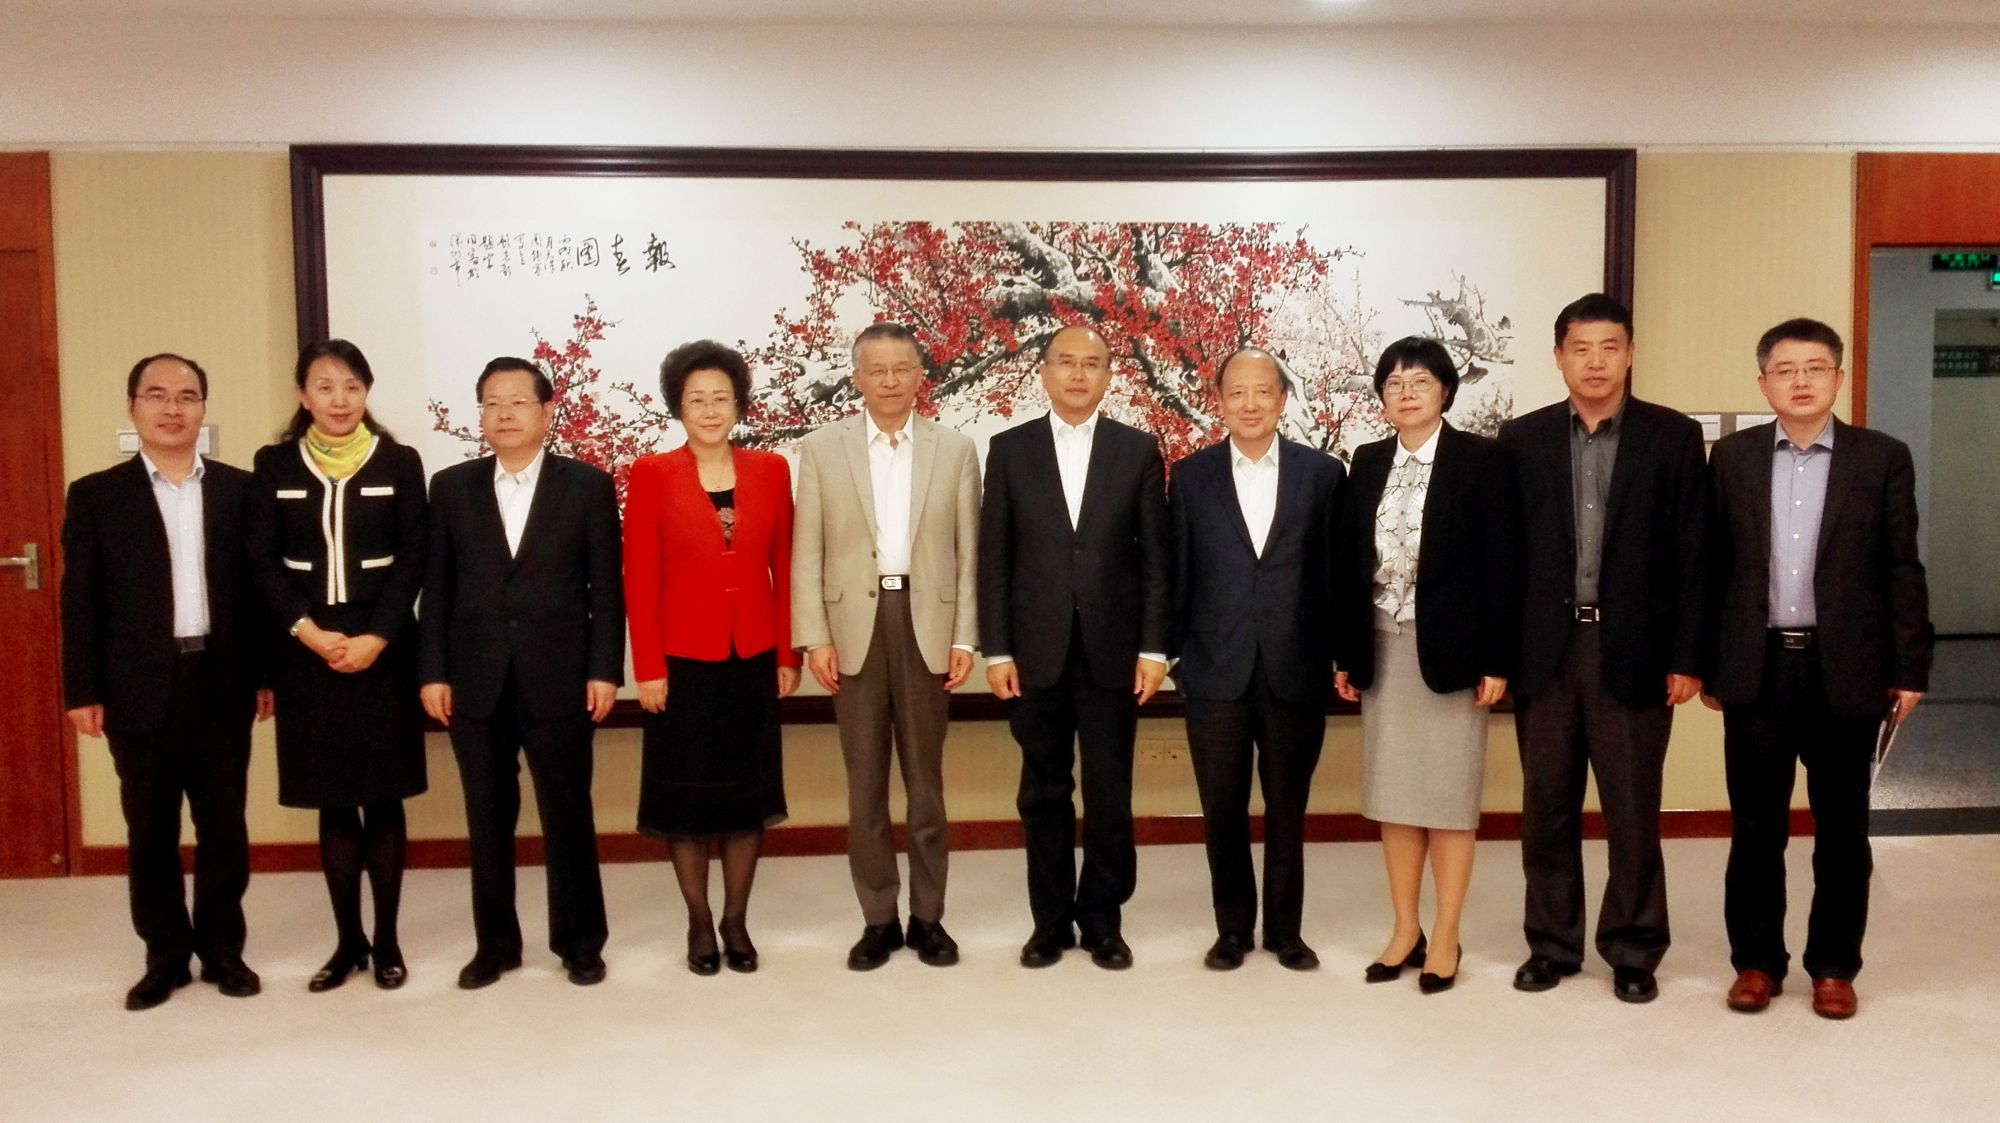 Xu Qin meets Chair of MIT Department of Mechanical Engineering Chen Gang visiting SUSTech, supports MIT-SUSTech cooperation